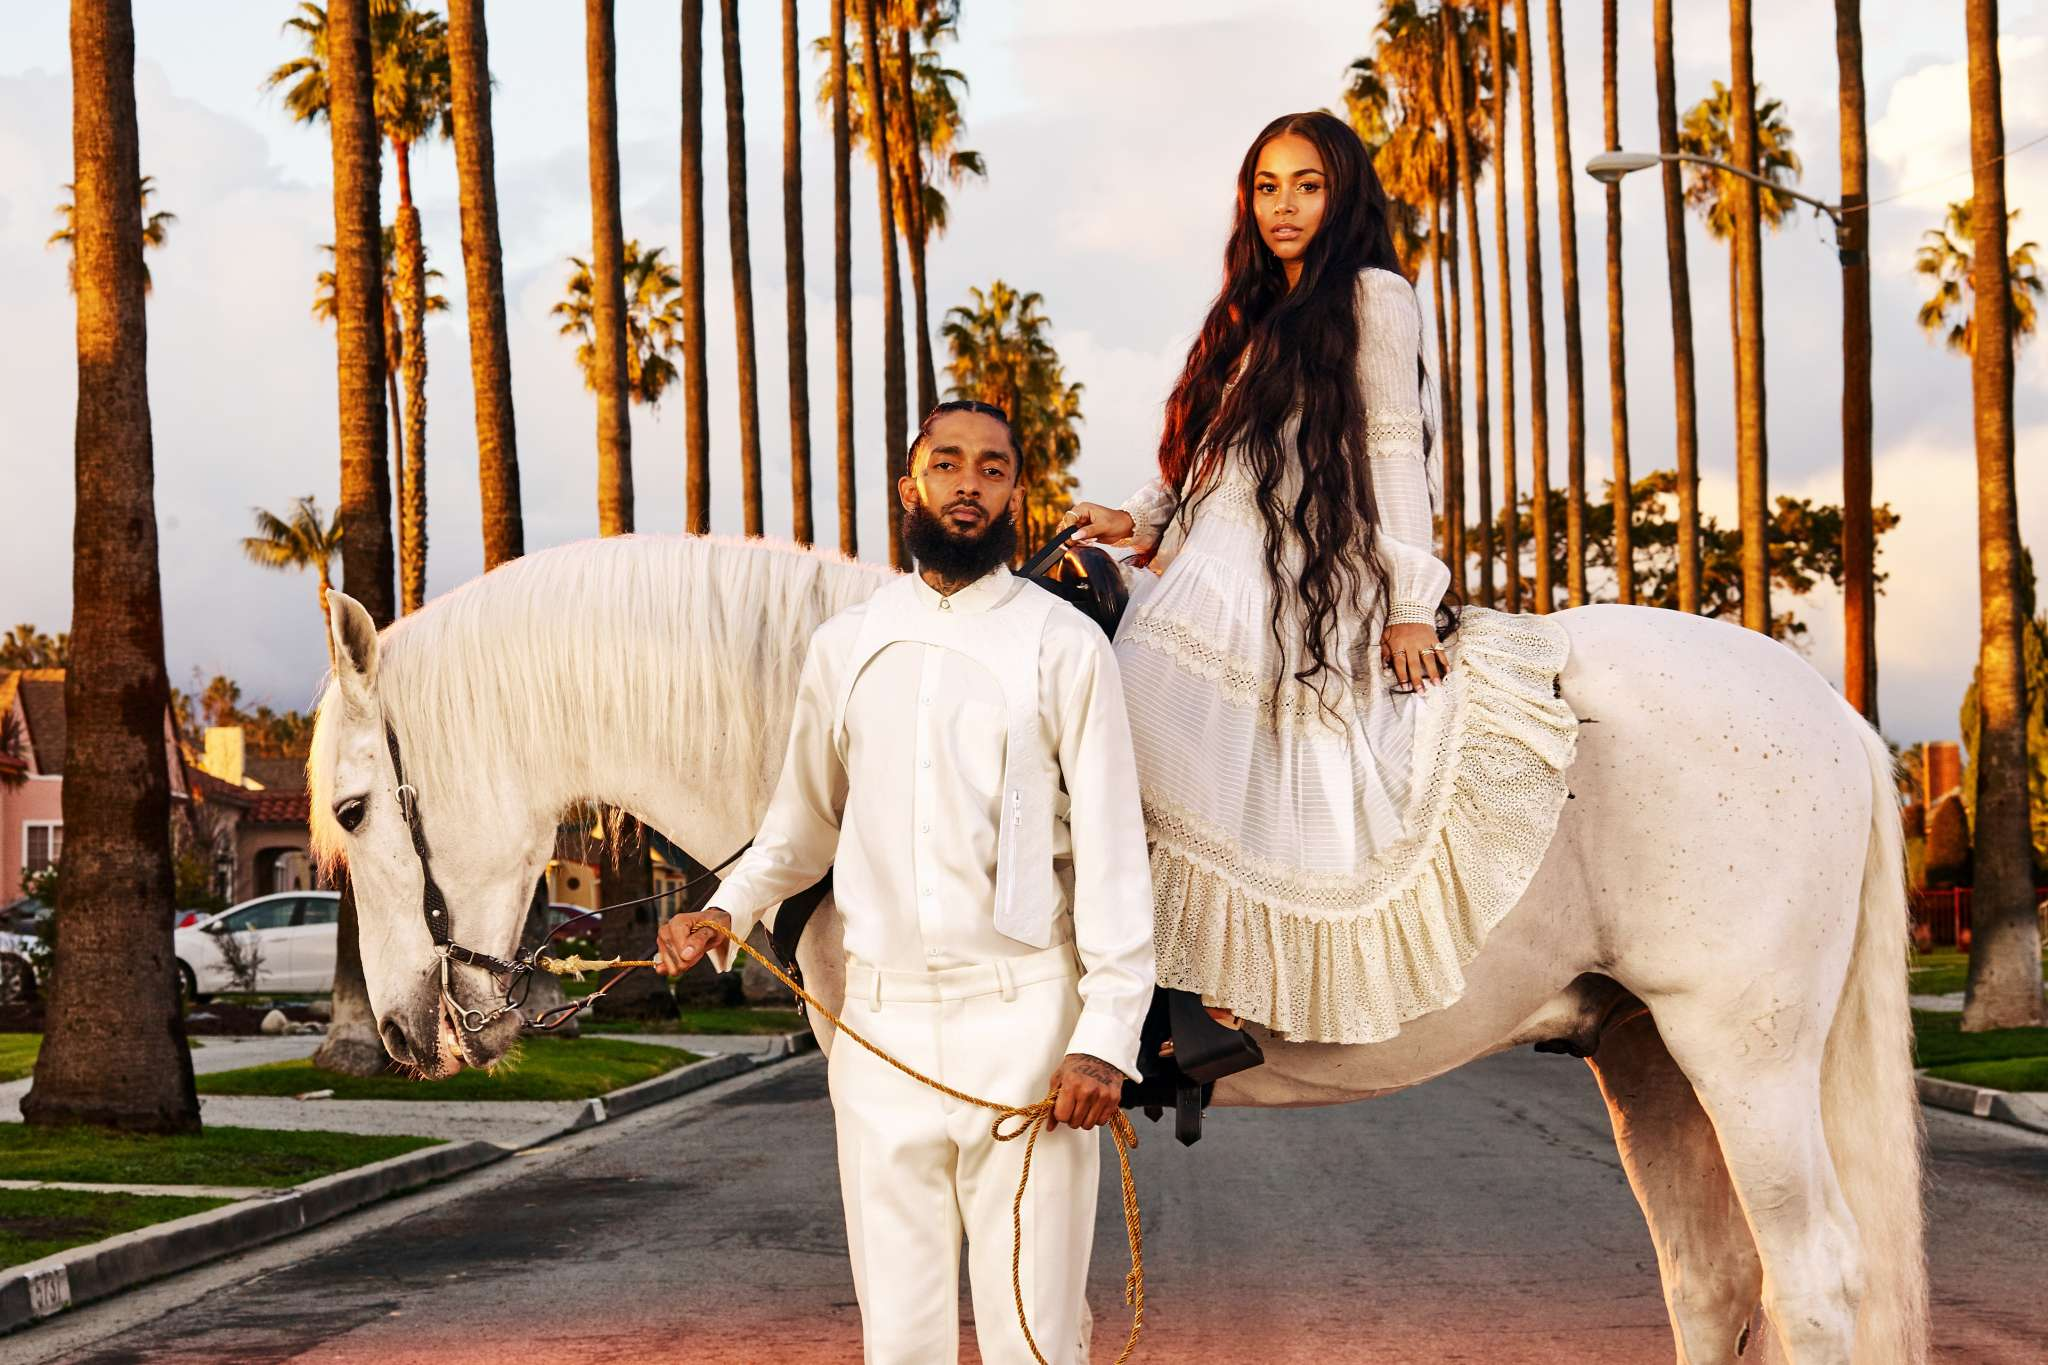 J.Lo, Alicia Keys, Ciara, And More Celebrities Are Sending Their Love And Support To Nipsey Hussle's Devastated Girlfriend Who Lost Her 'Sanctuary, Protector, And Soul'